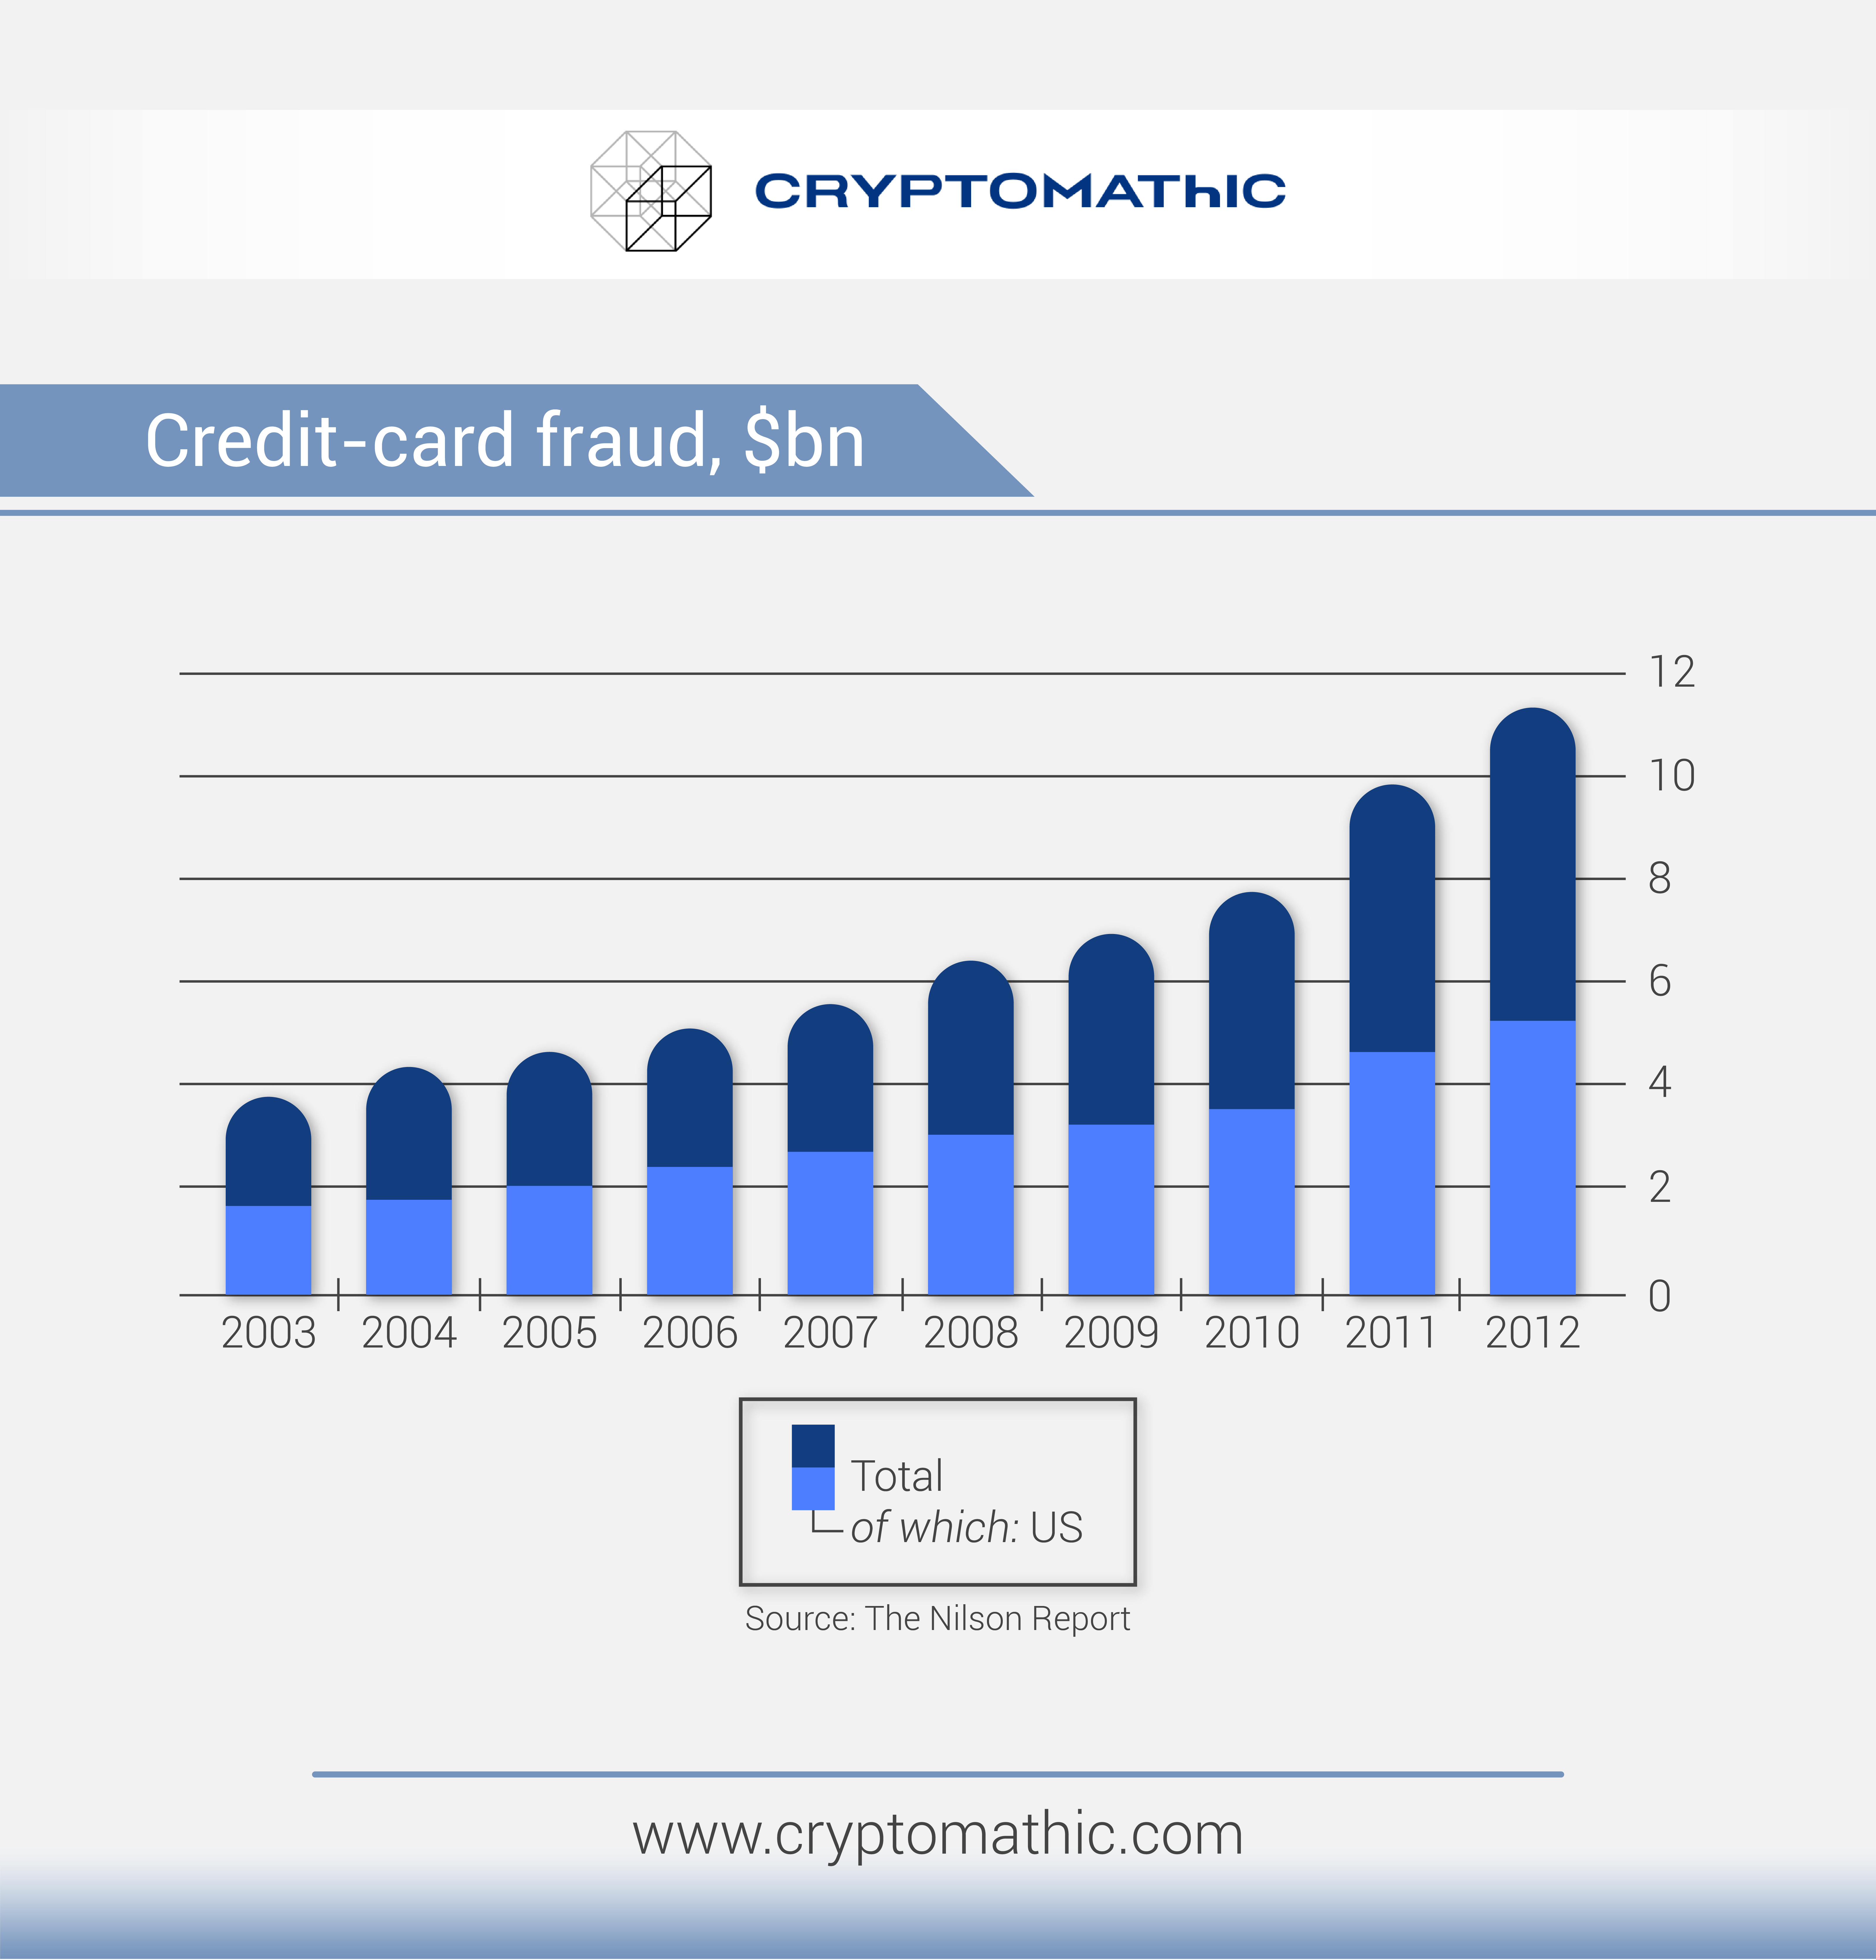 InfoGraphic Credit card fraud by Cryptomathic